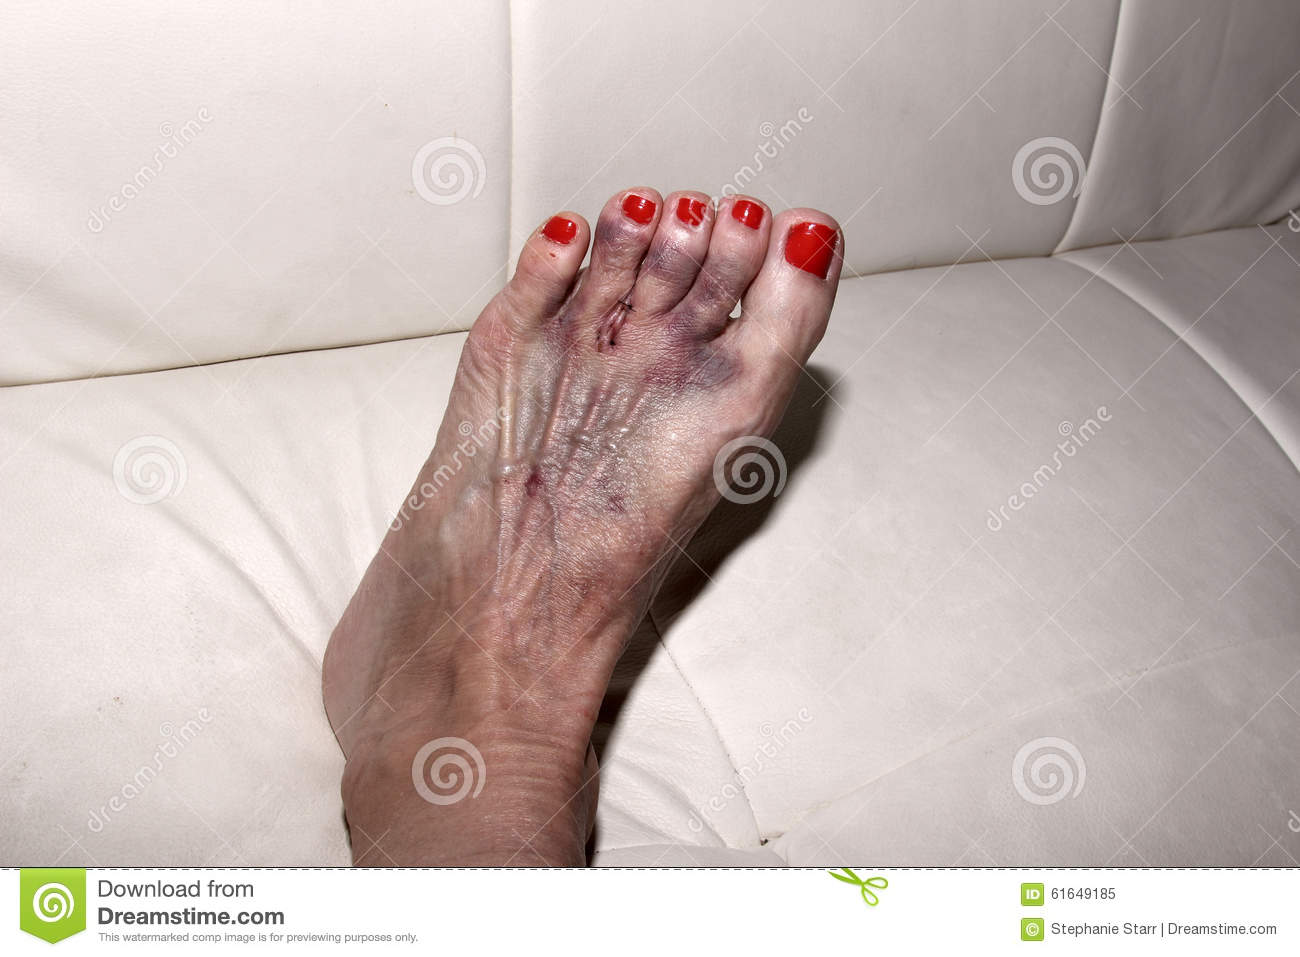 result of morton 39 s neuroma surgery on a woman 39 s foot stock image image of bandage position. Black Bedroom Furniture Sets. Home Design Ideas